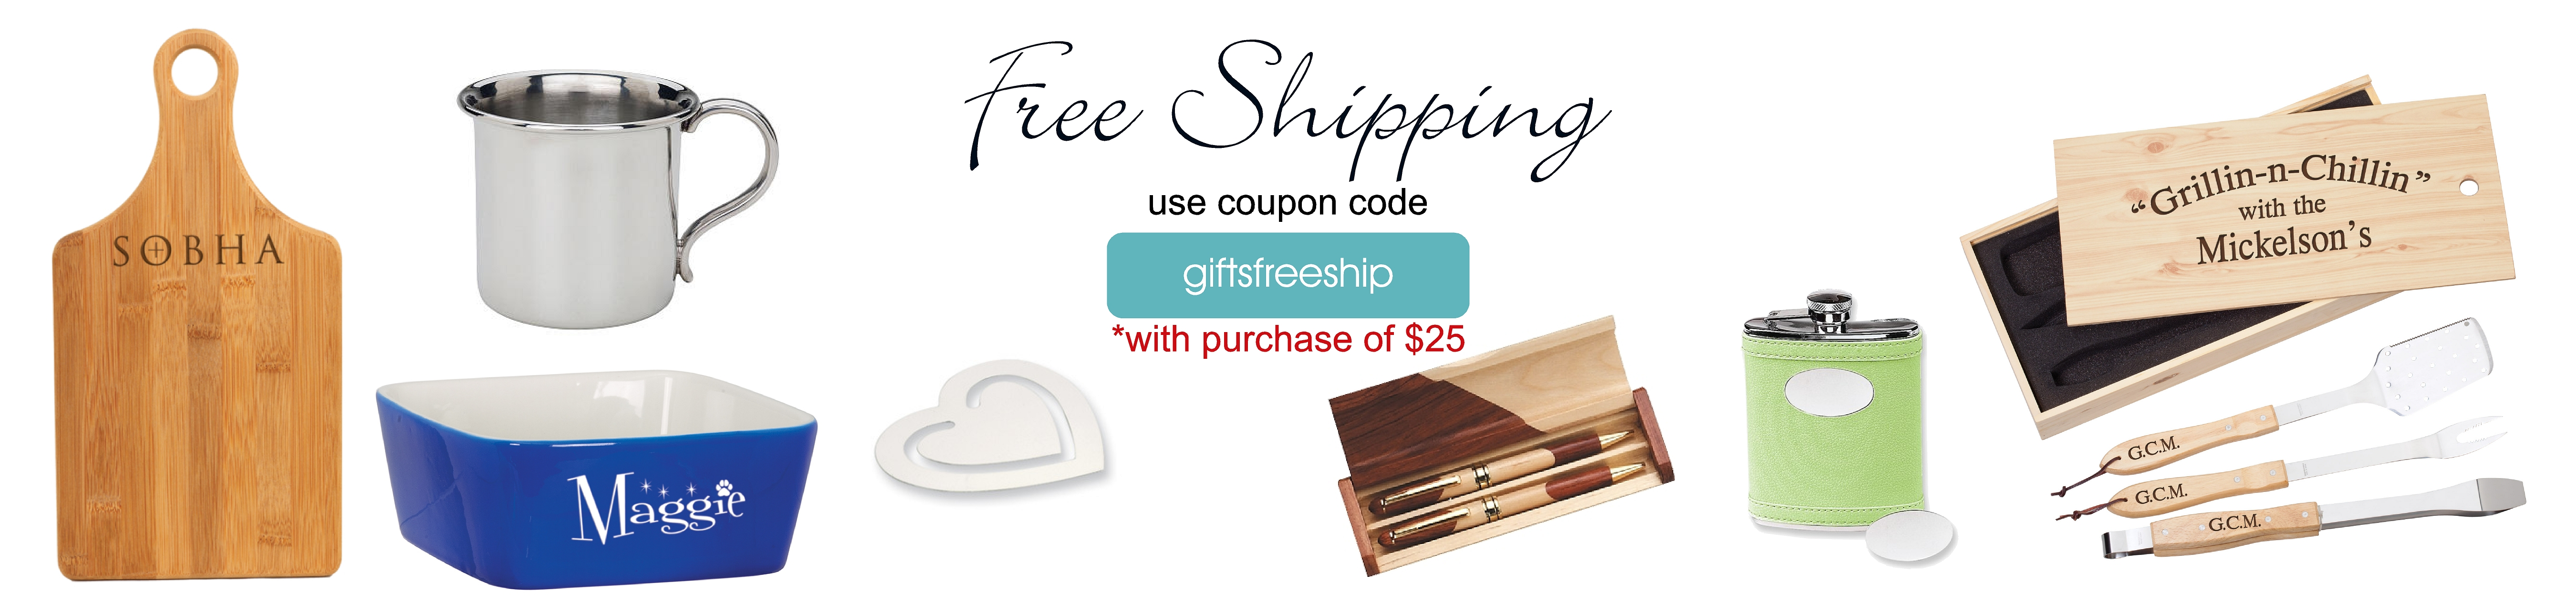 gifts-free-shipping.jpg